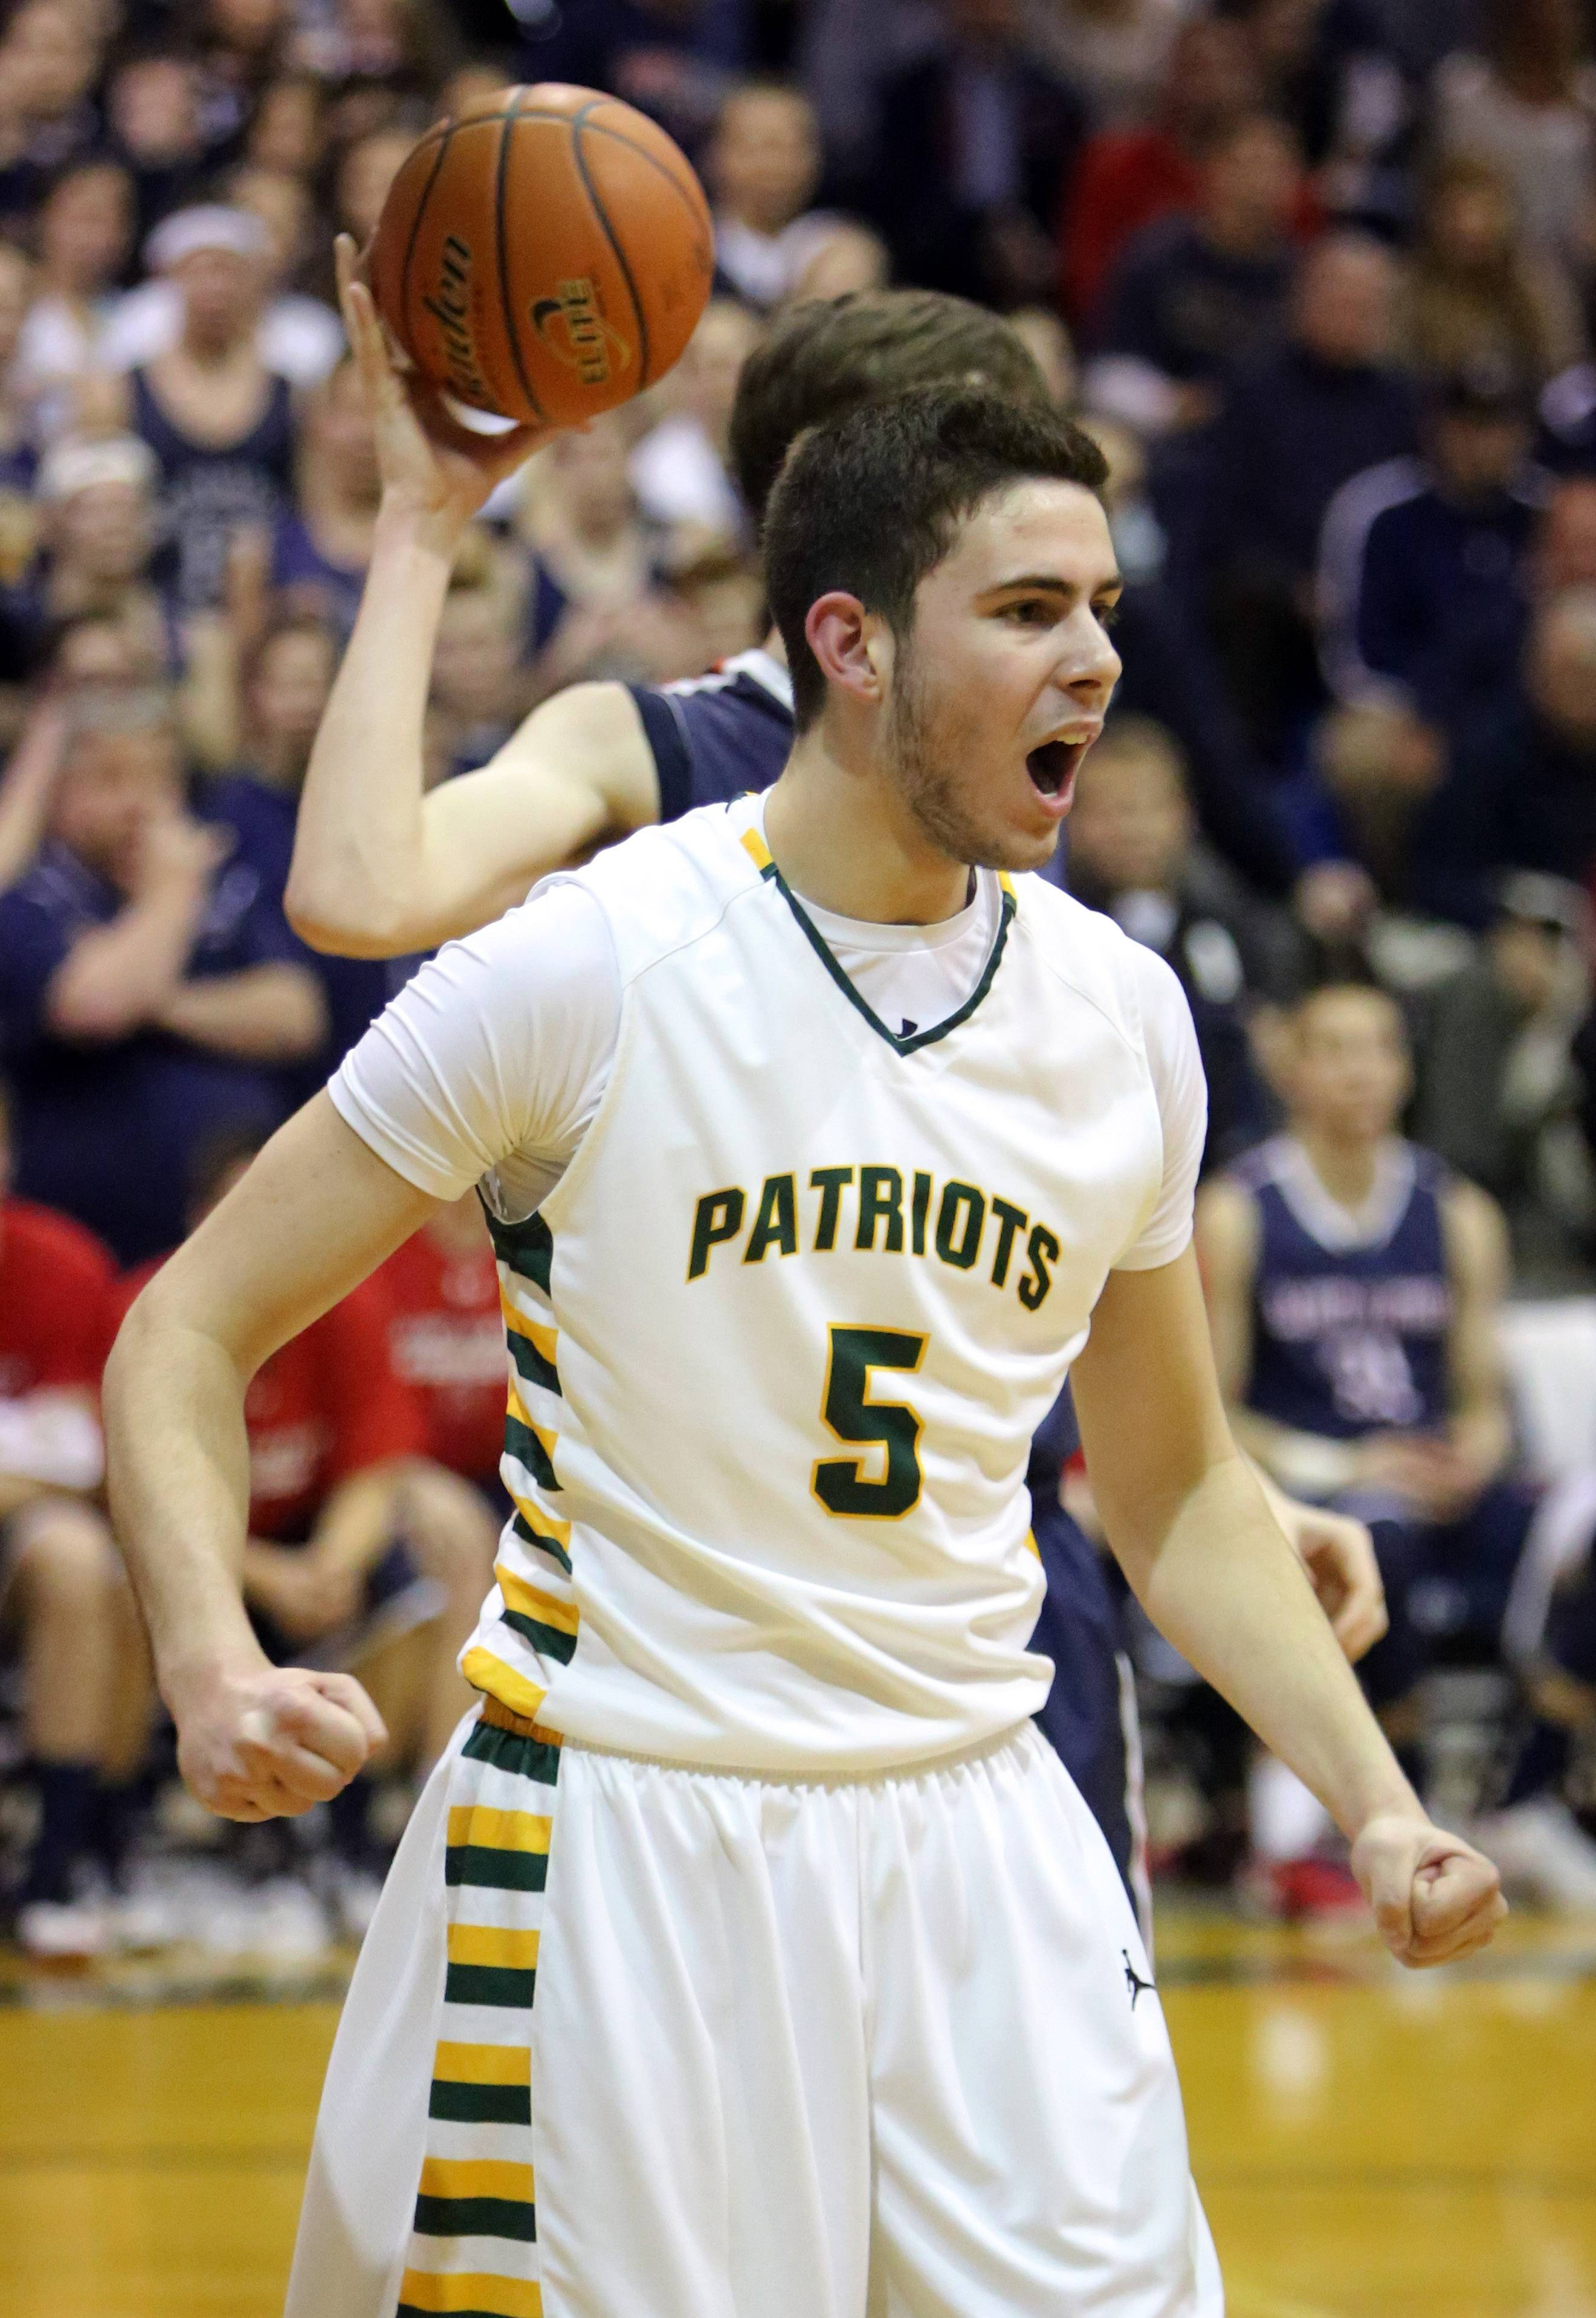 Stevenson's Parker Nichols reacts after getting called for a charge during the Class 4A sectional semifinal at Lake Zurich on Tuesday.